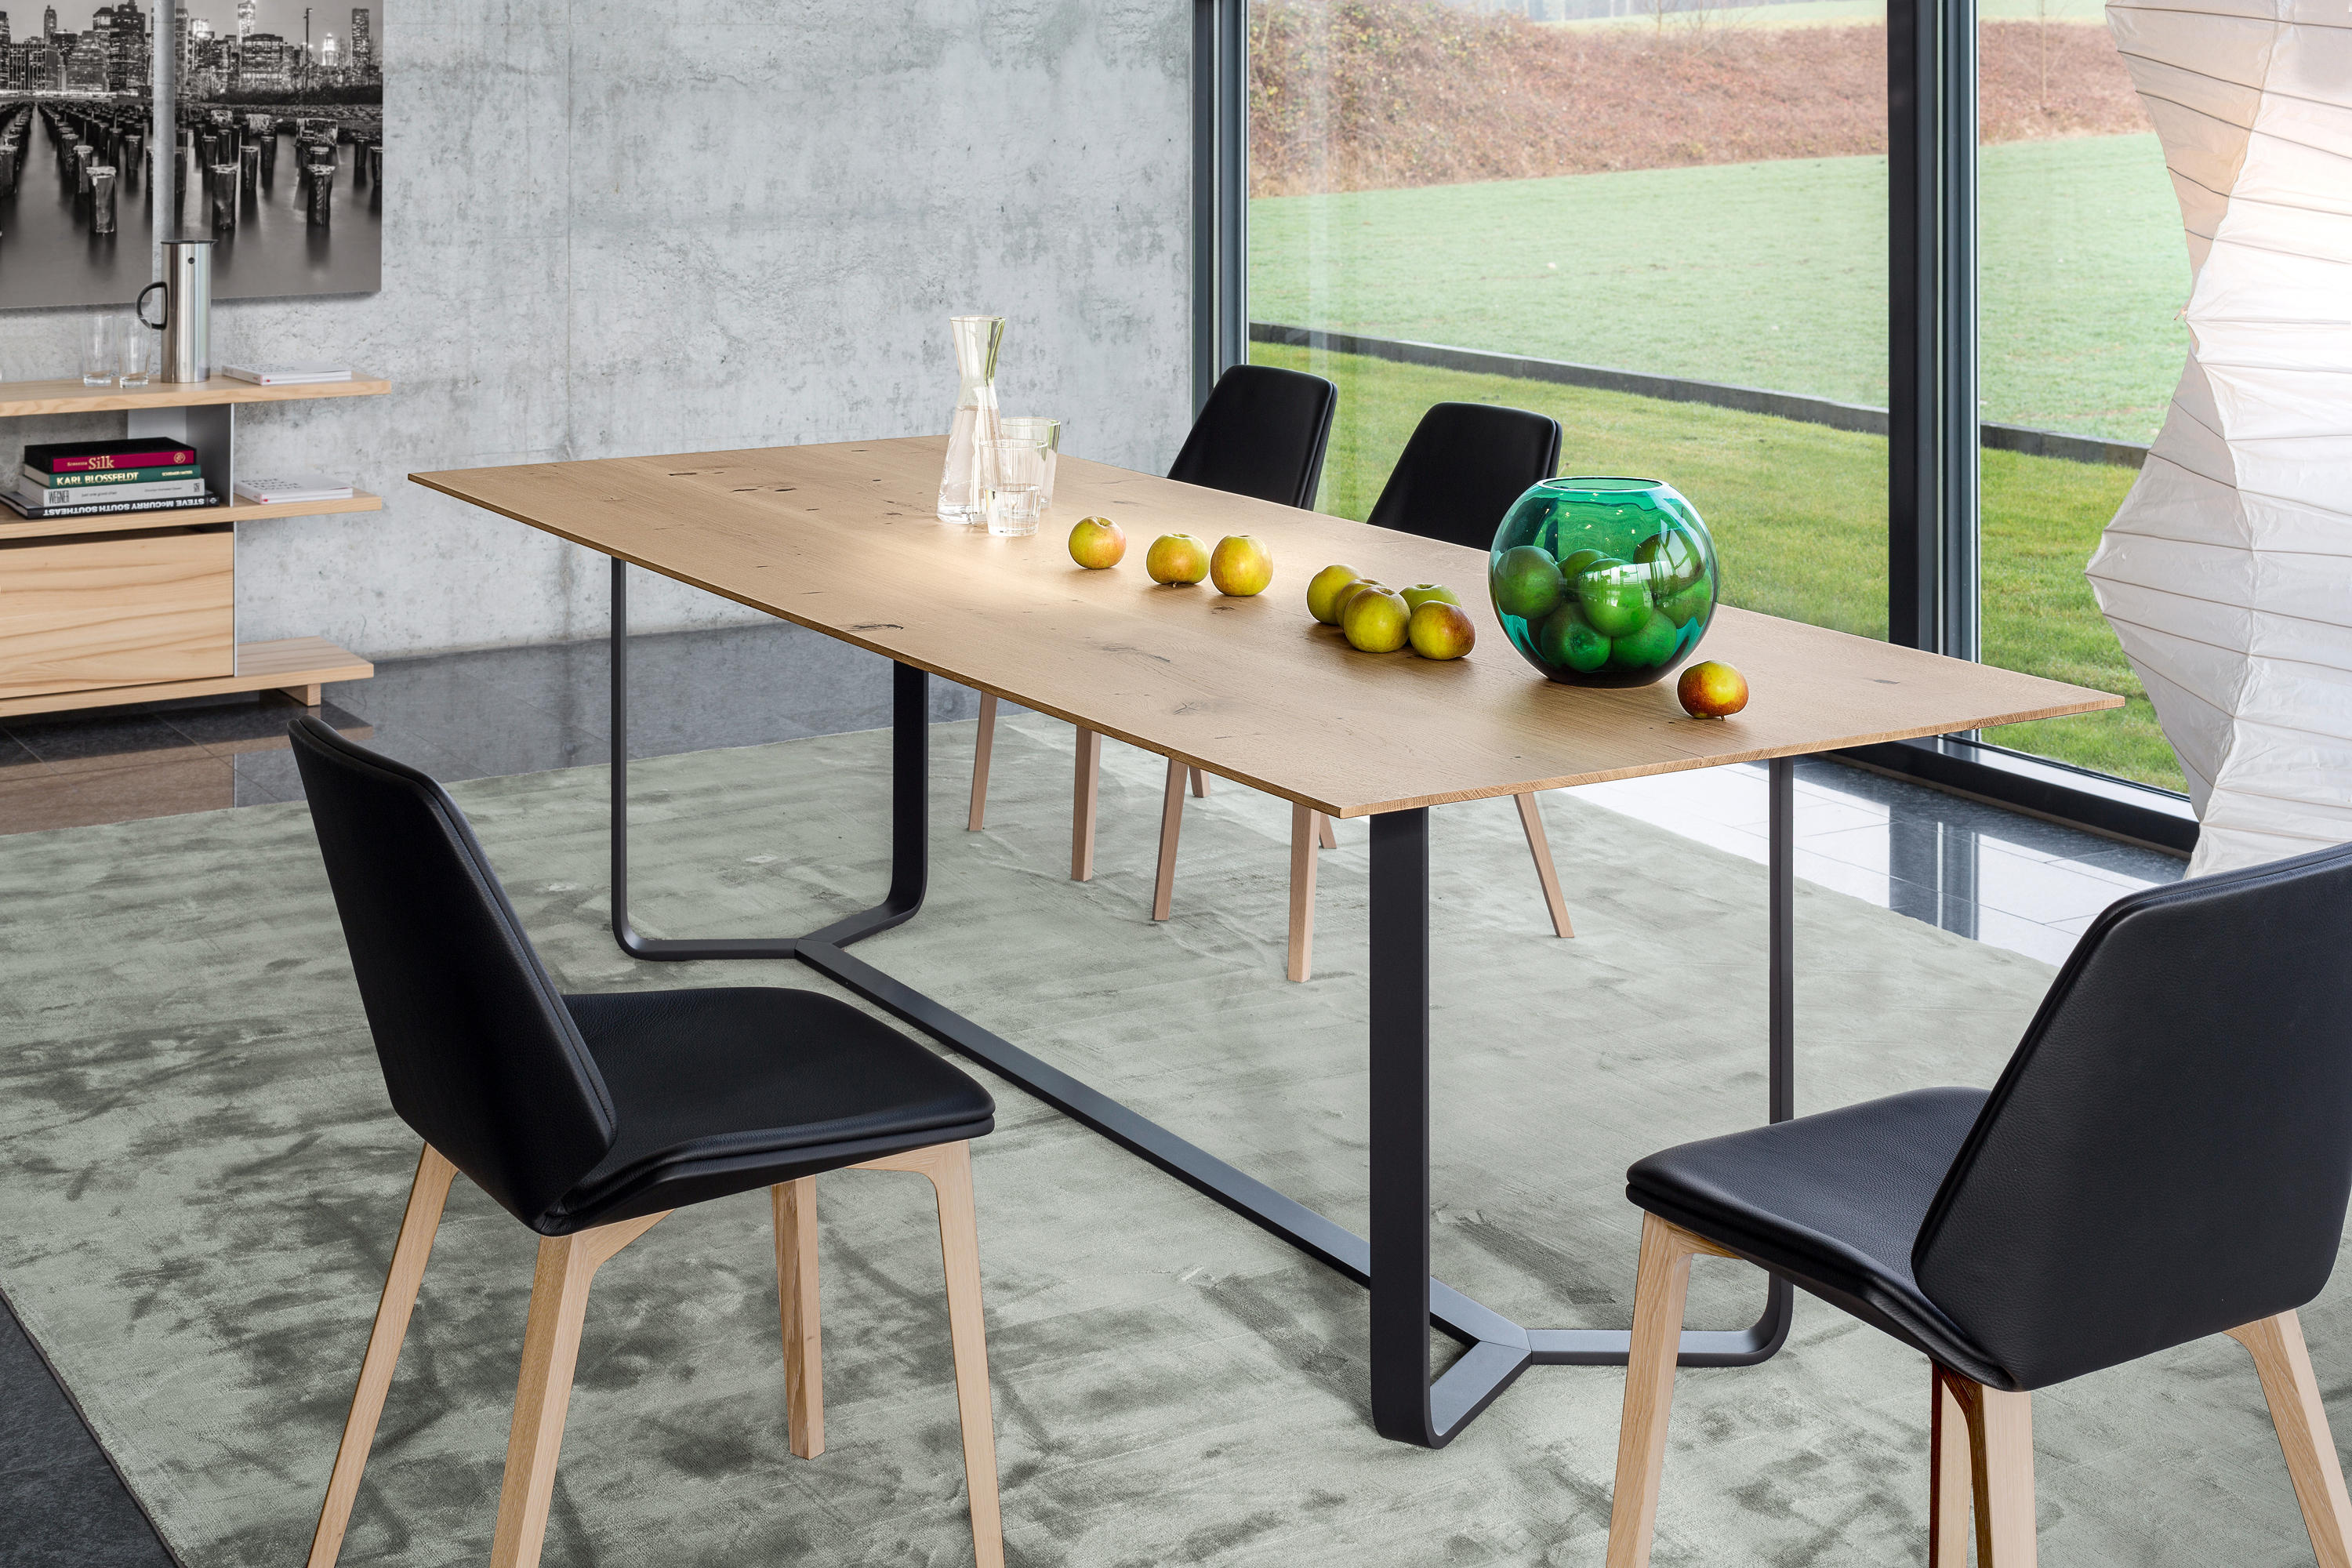 Yoho table mesas comedor de girsberger architonic for Licitacion comedor 2016